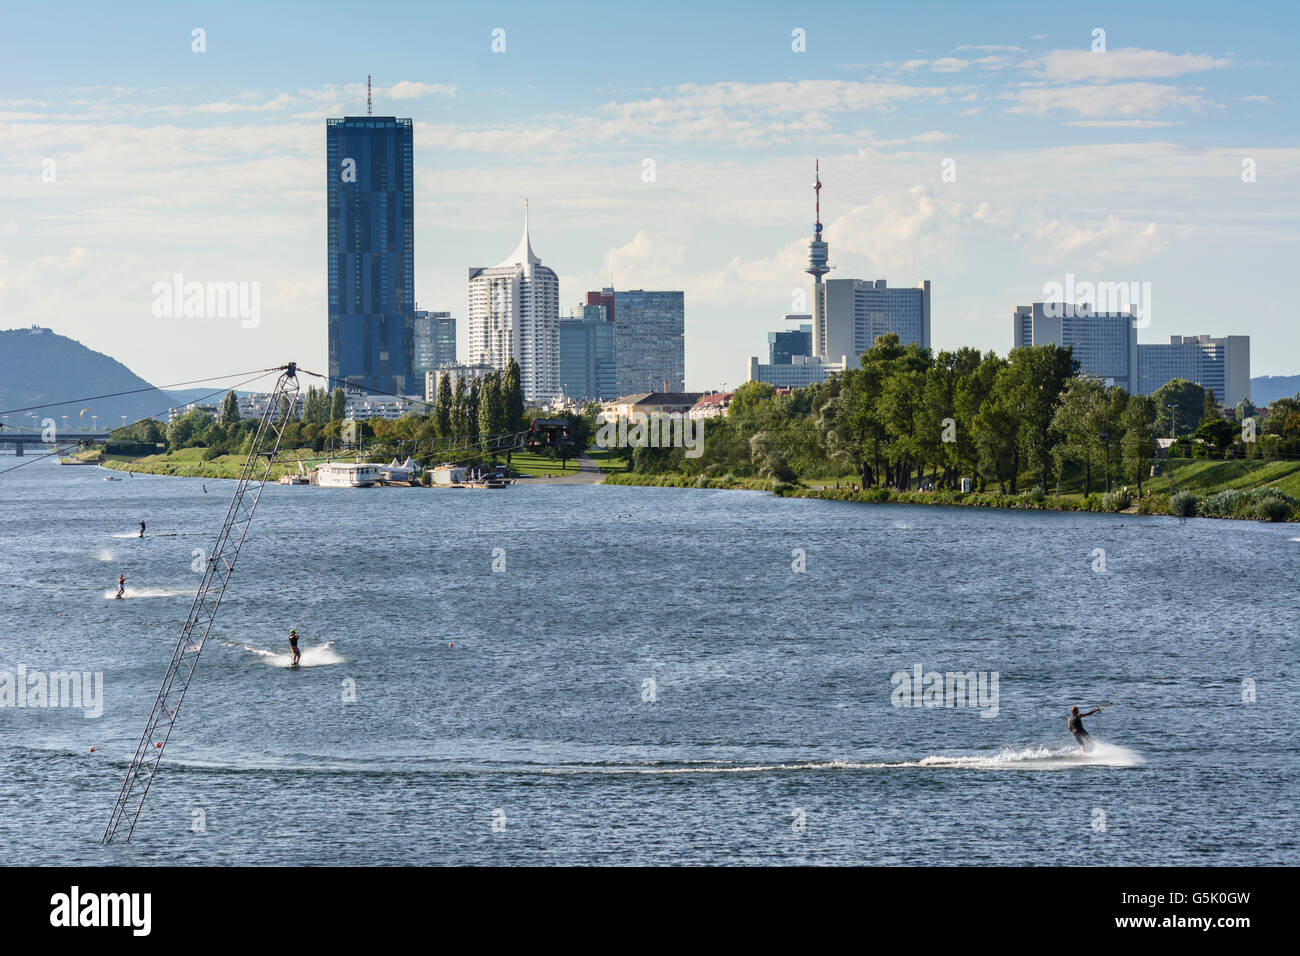 Wakeboarding with a water ski lift in the New Danube before the DC Tower 1 , the skyscraper New Danube and the Vienna - Stock Image